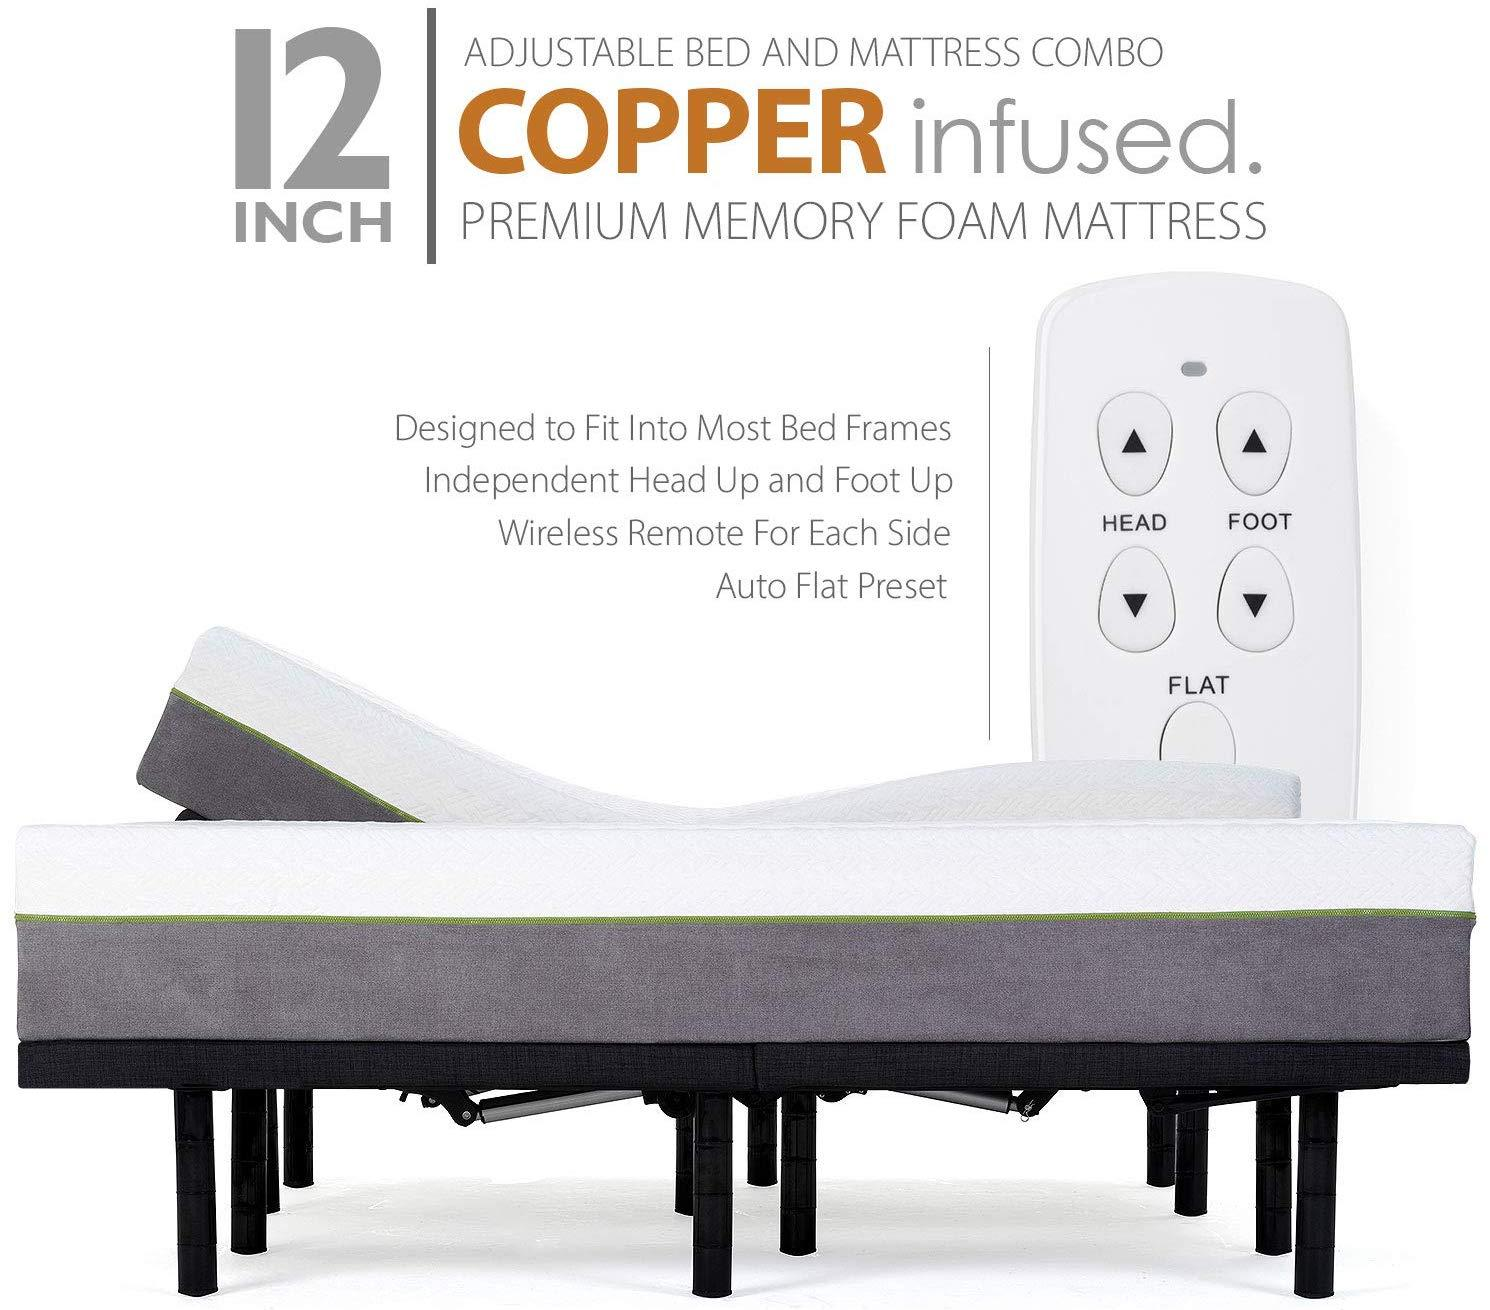 Adjustable Bed Frame and 12 Inch Split King Copper Infused Cool Memory Foam Mattress